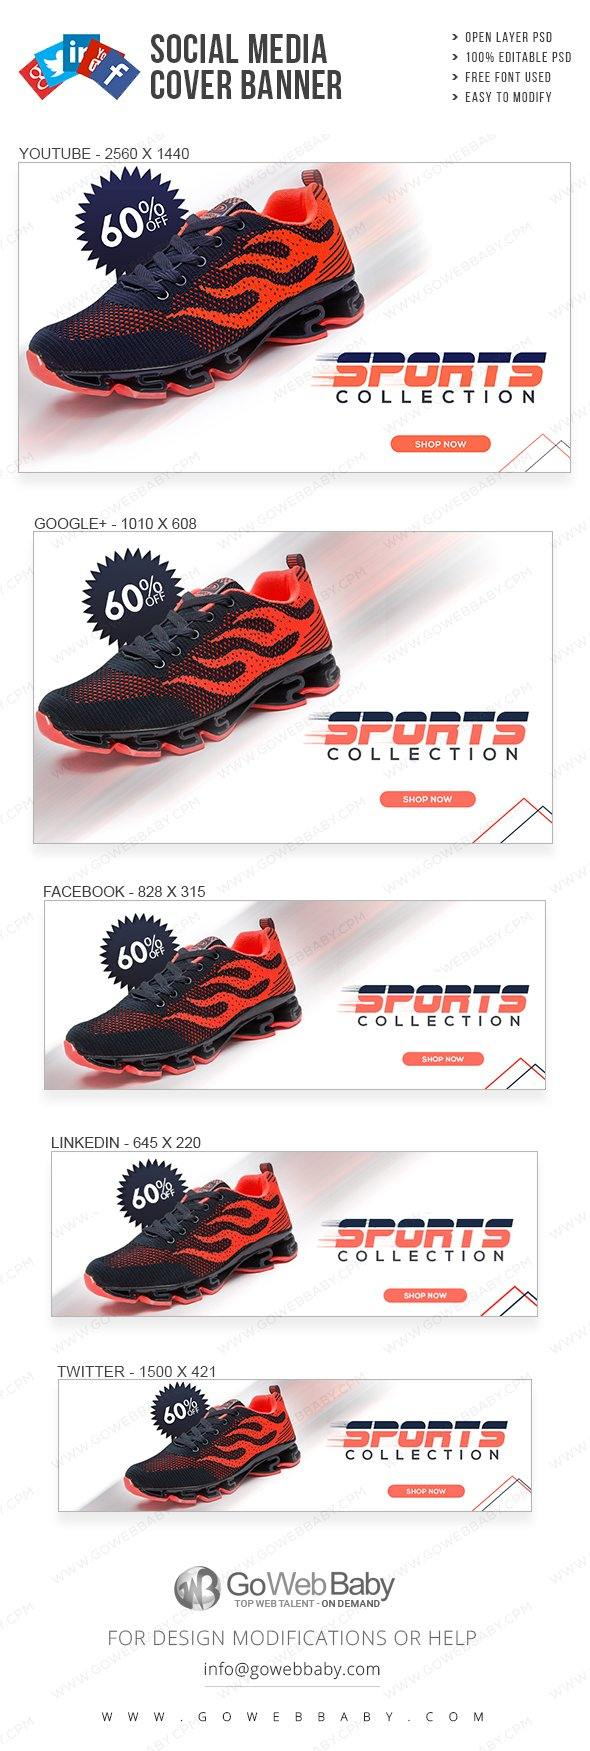 Social Media Cover Banner - Sports Footwear For Website Marketing - GoWebBaby.Com